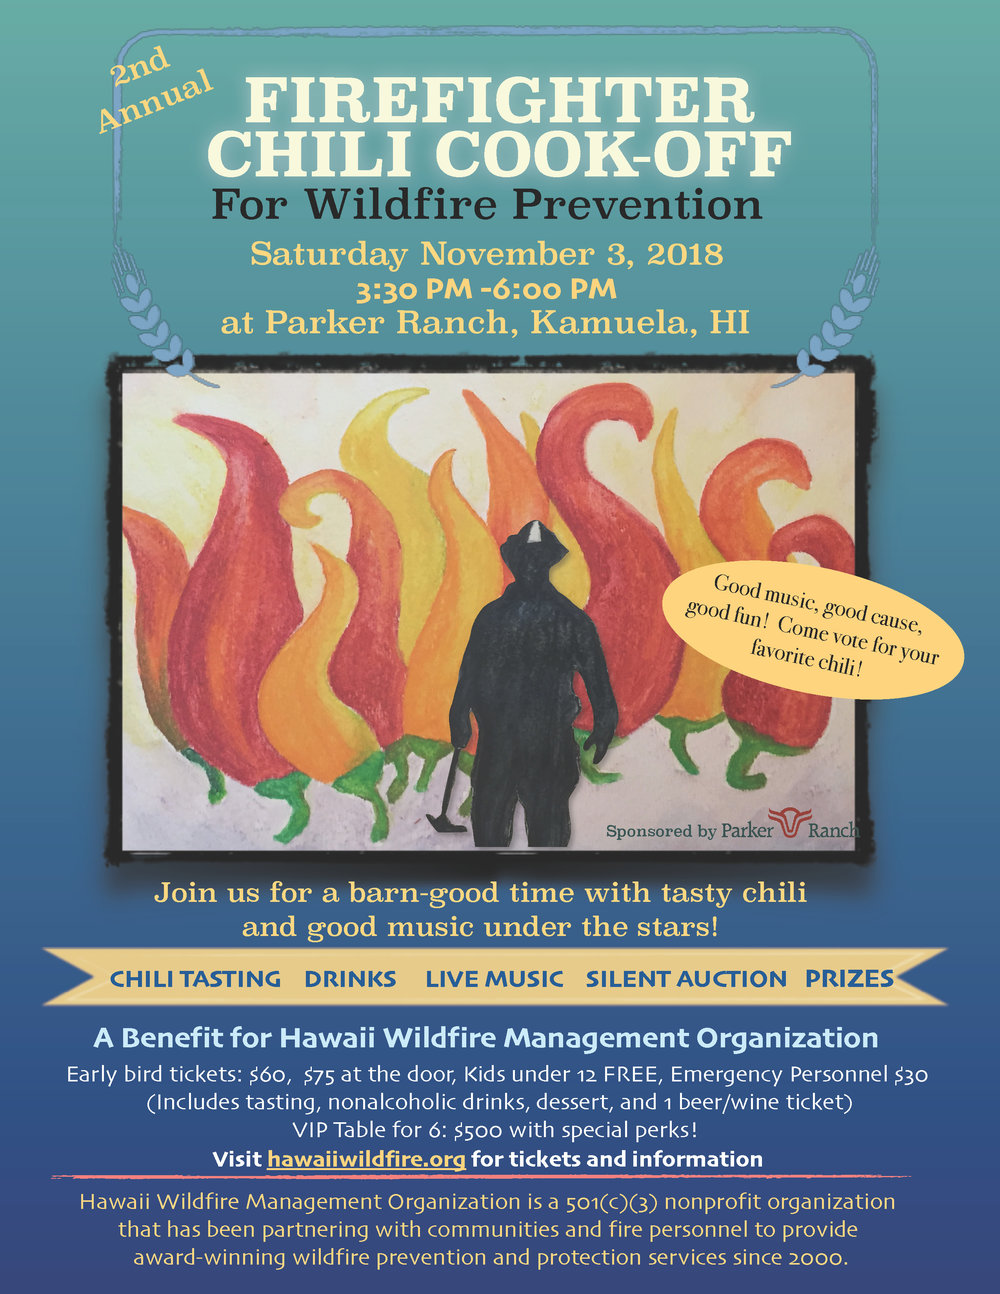 2018 Firefighter Chili Cook-Off for Wildfire Prevention Flyer1.jpg